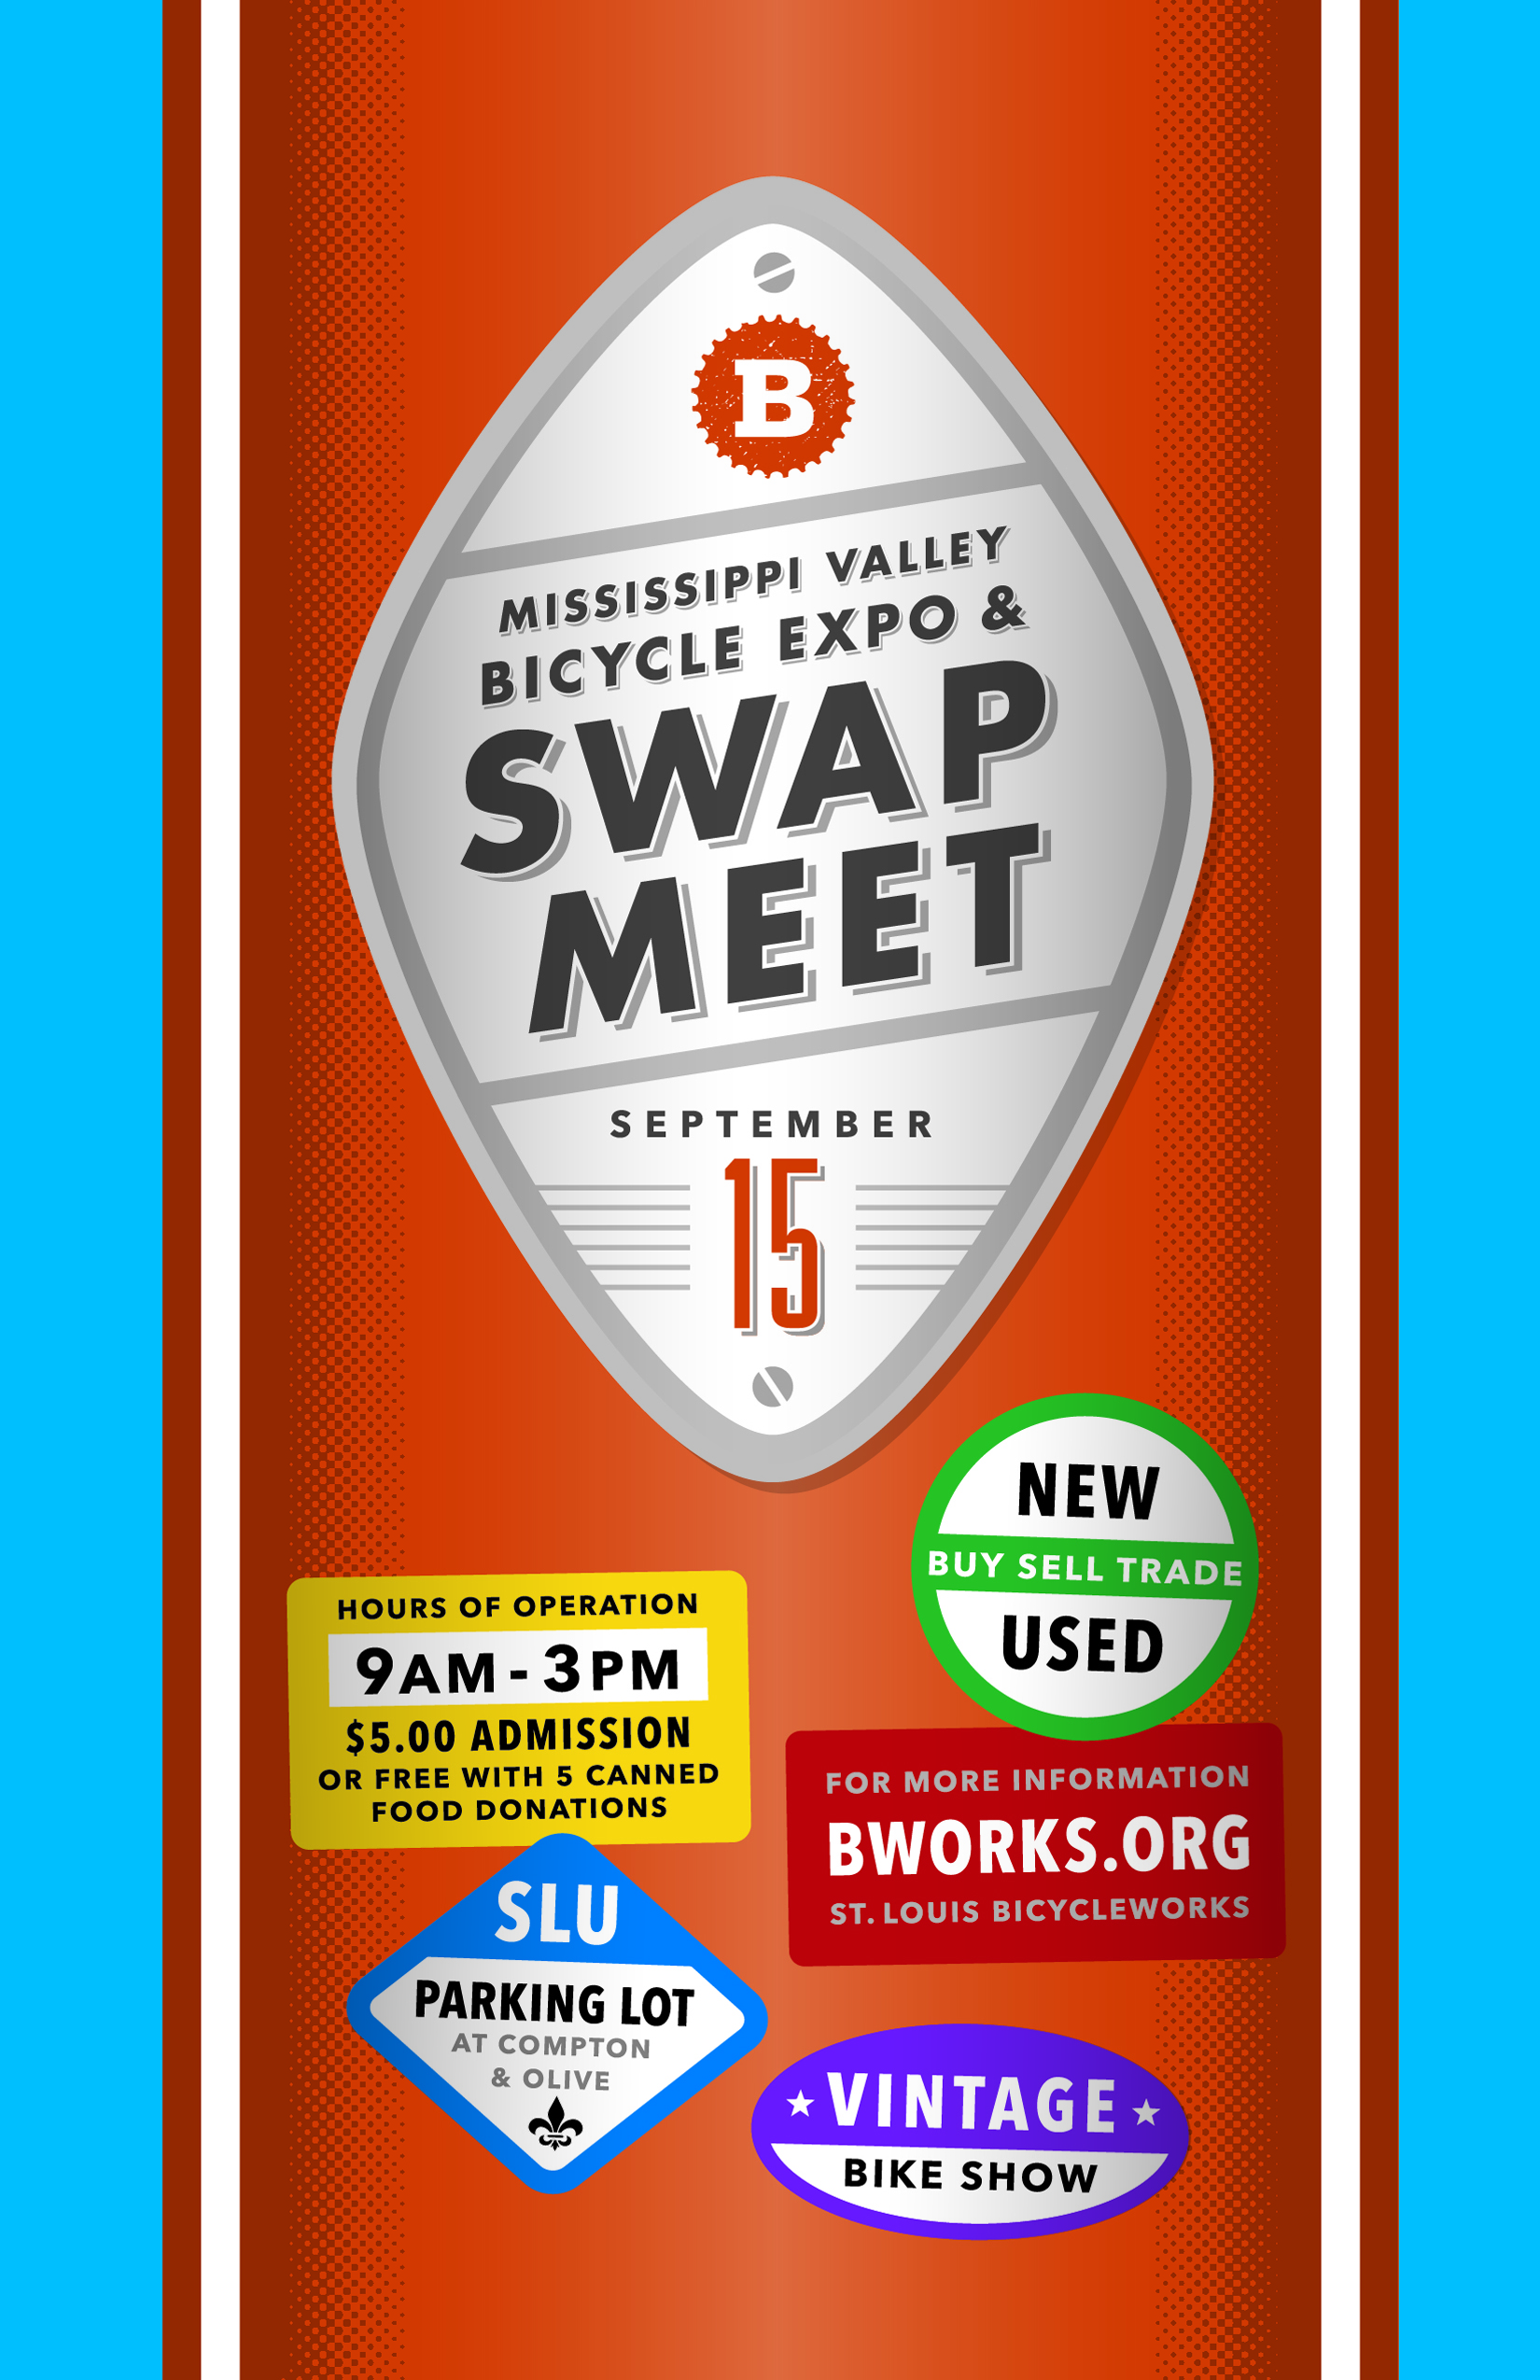 2013 mississippi valley bicycle expo swap meet